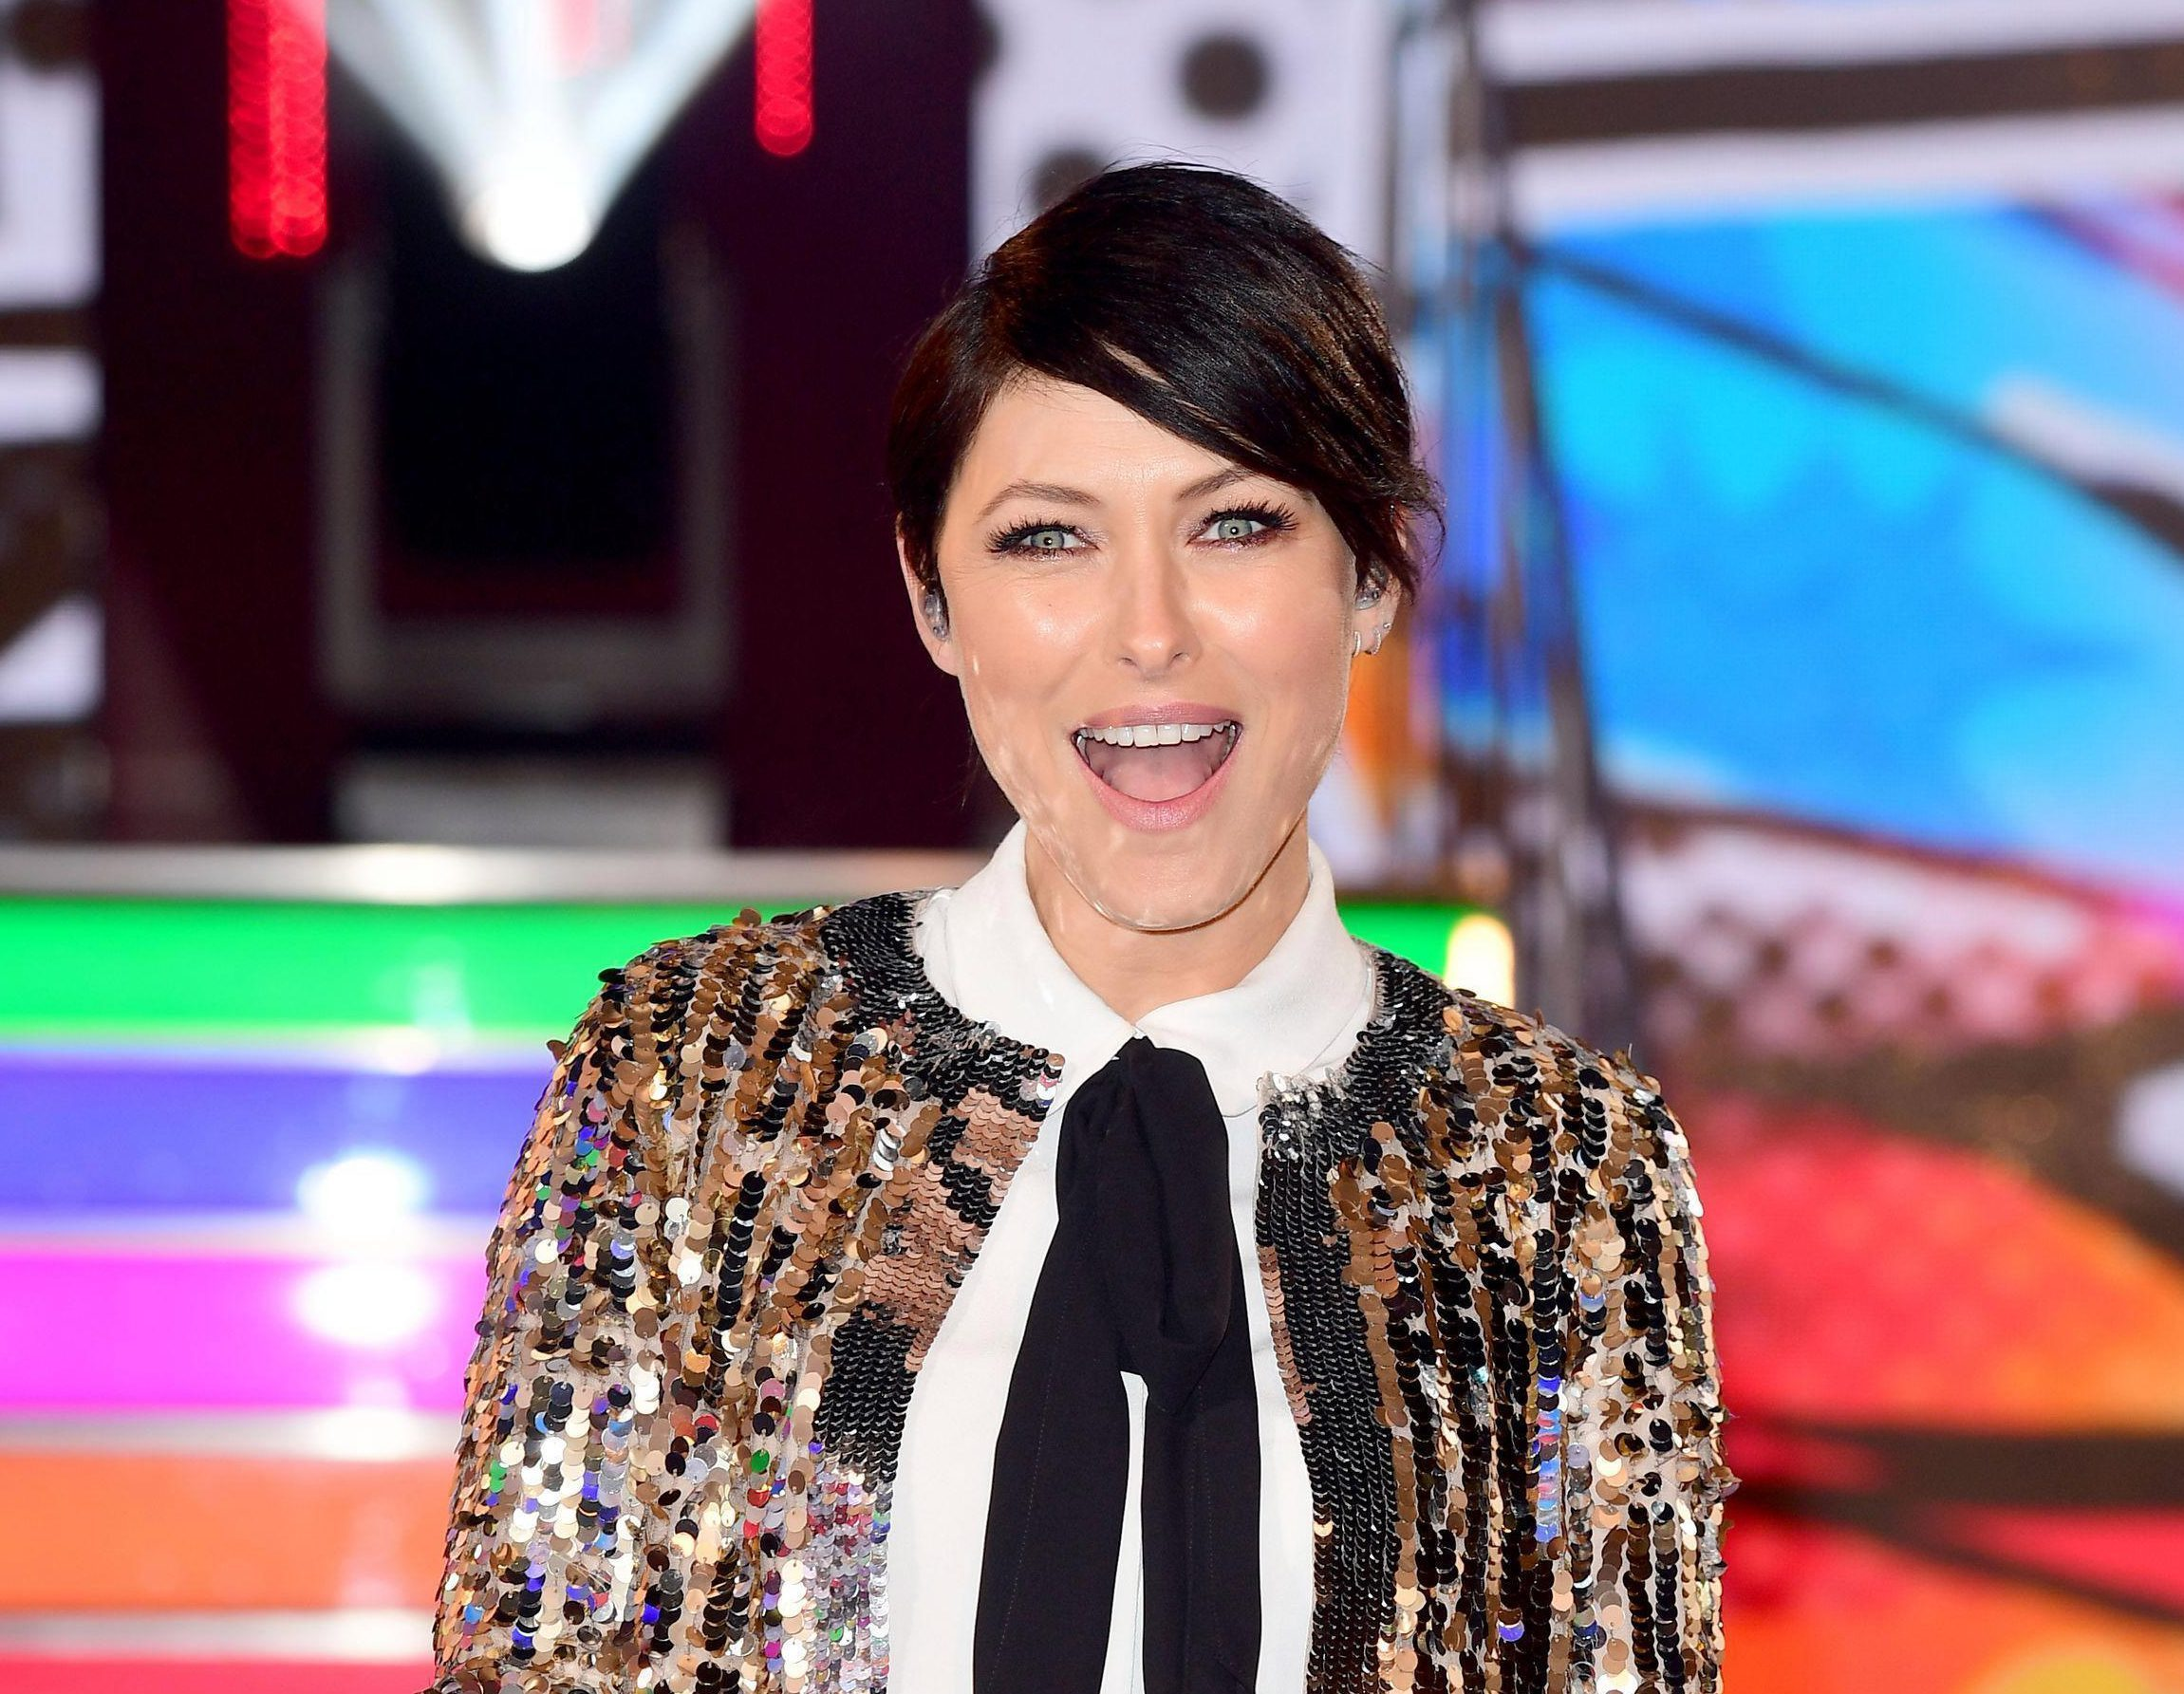 Emma Willis – 5 fast facts about The Voice UK and Celebrity Big Brother 2018 presenter